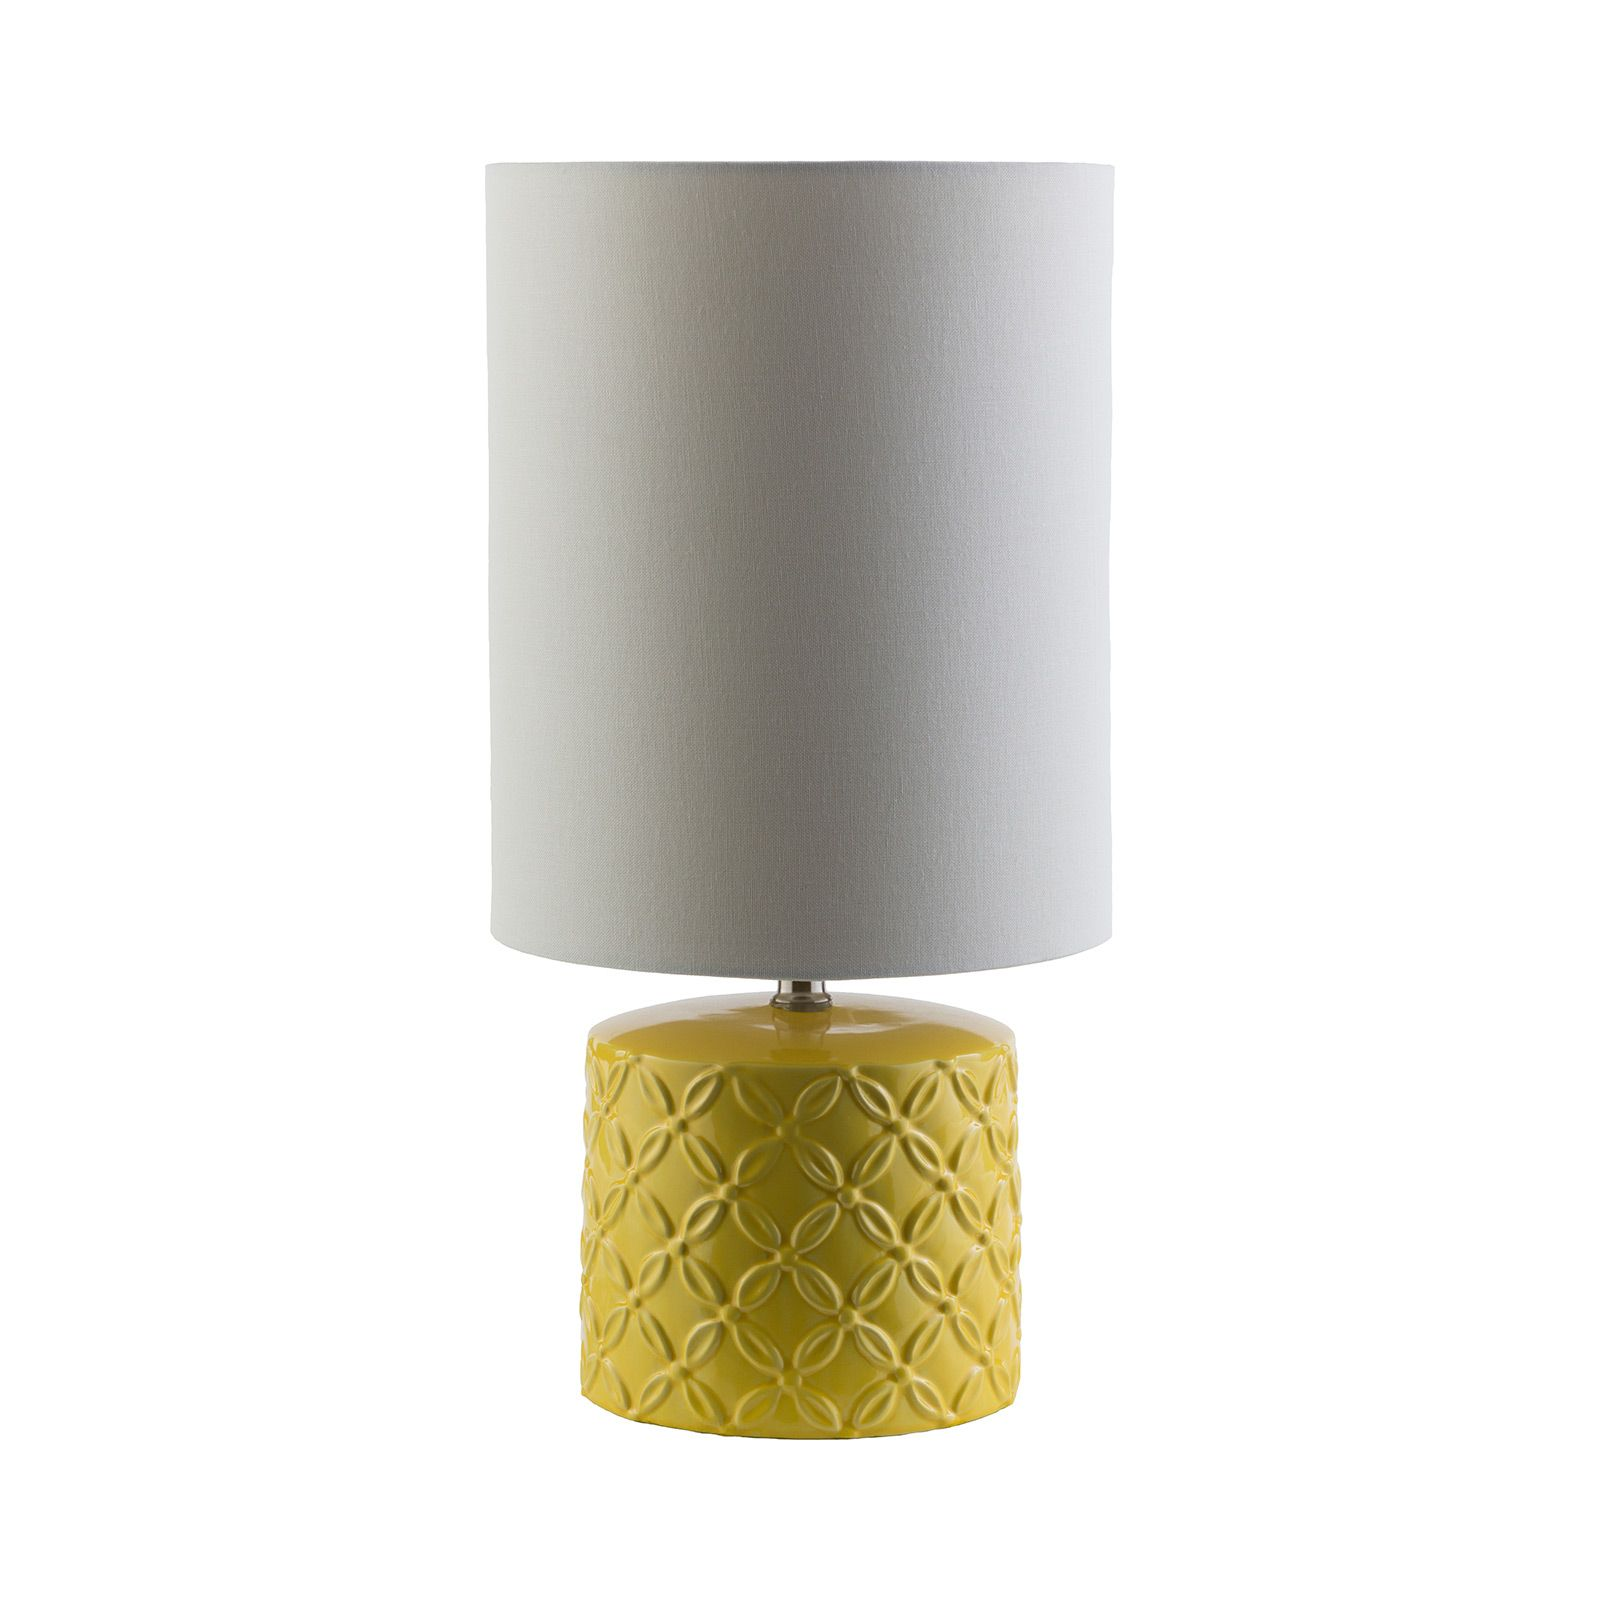 Refresh a chic living room end table or bedroom side table with this ...